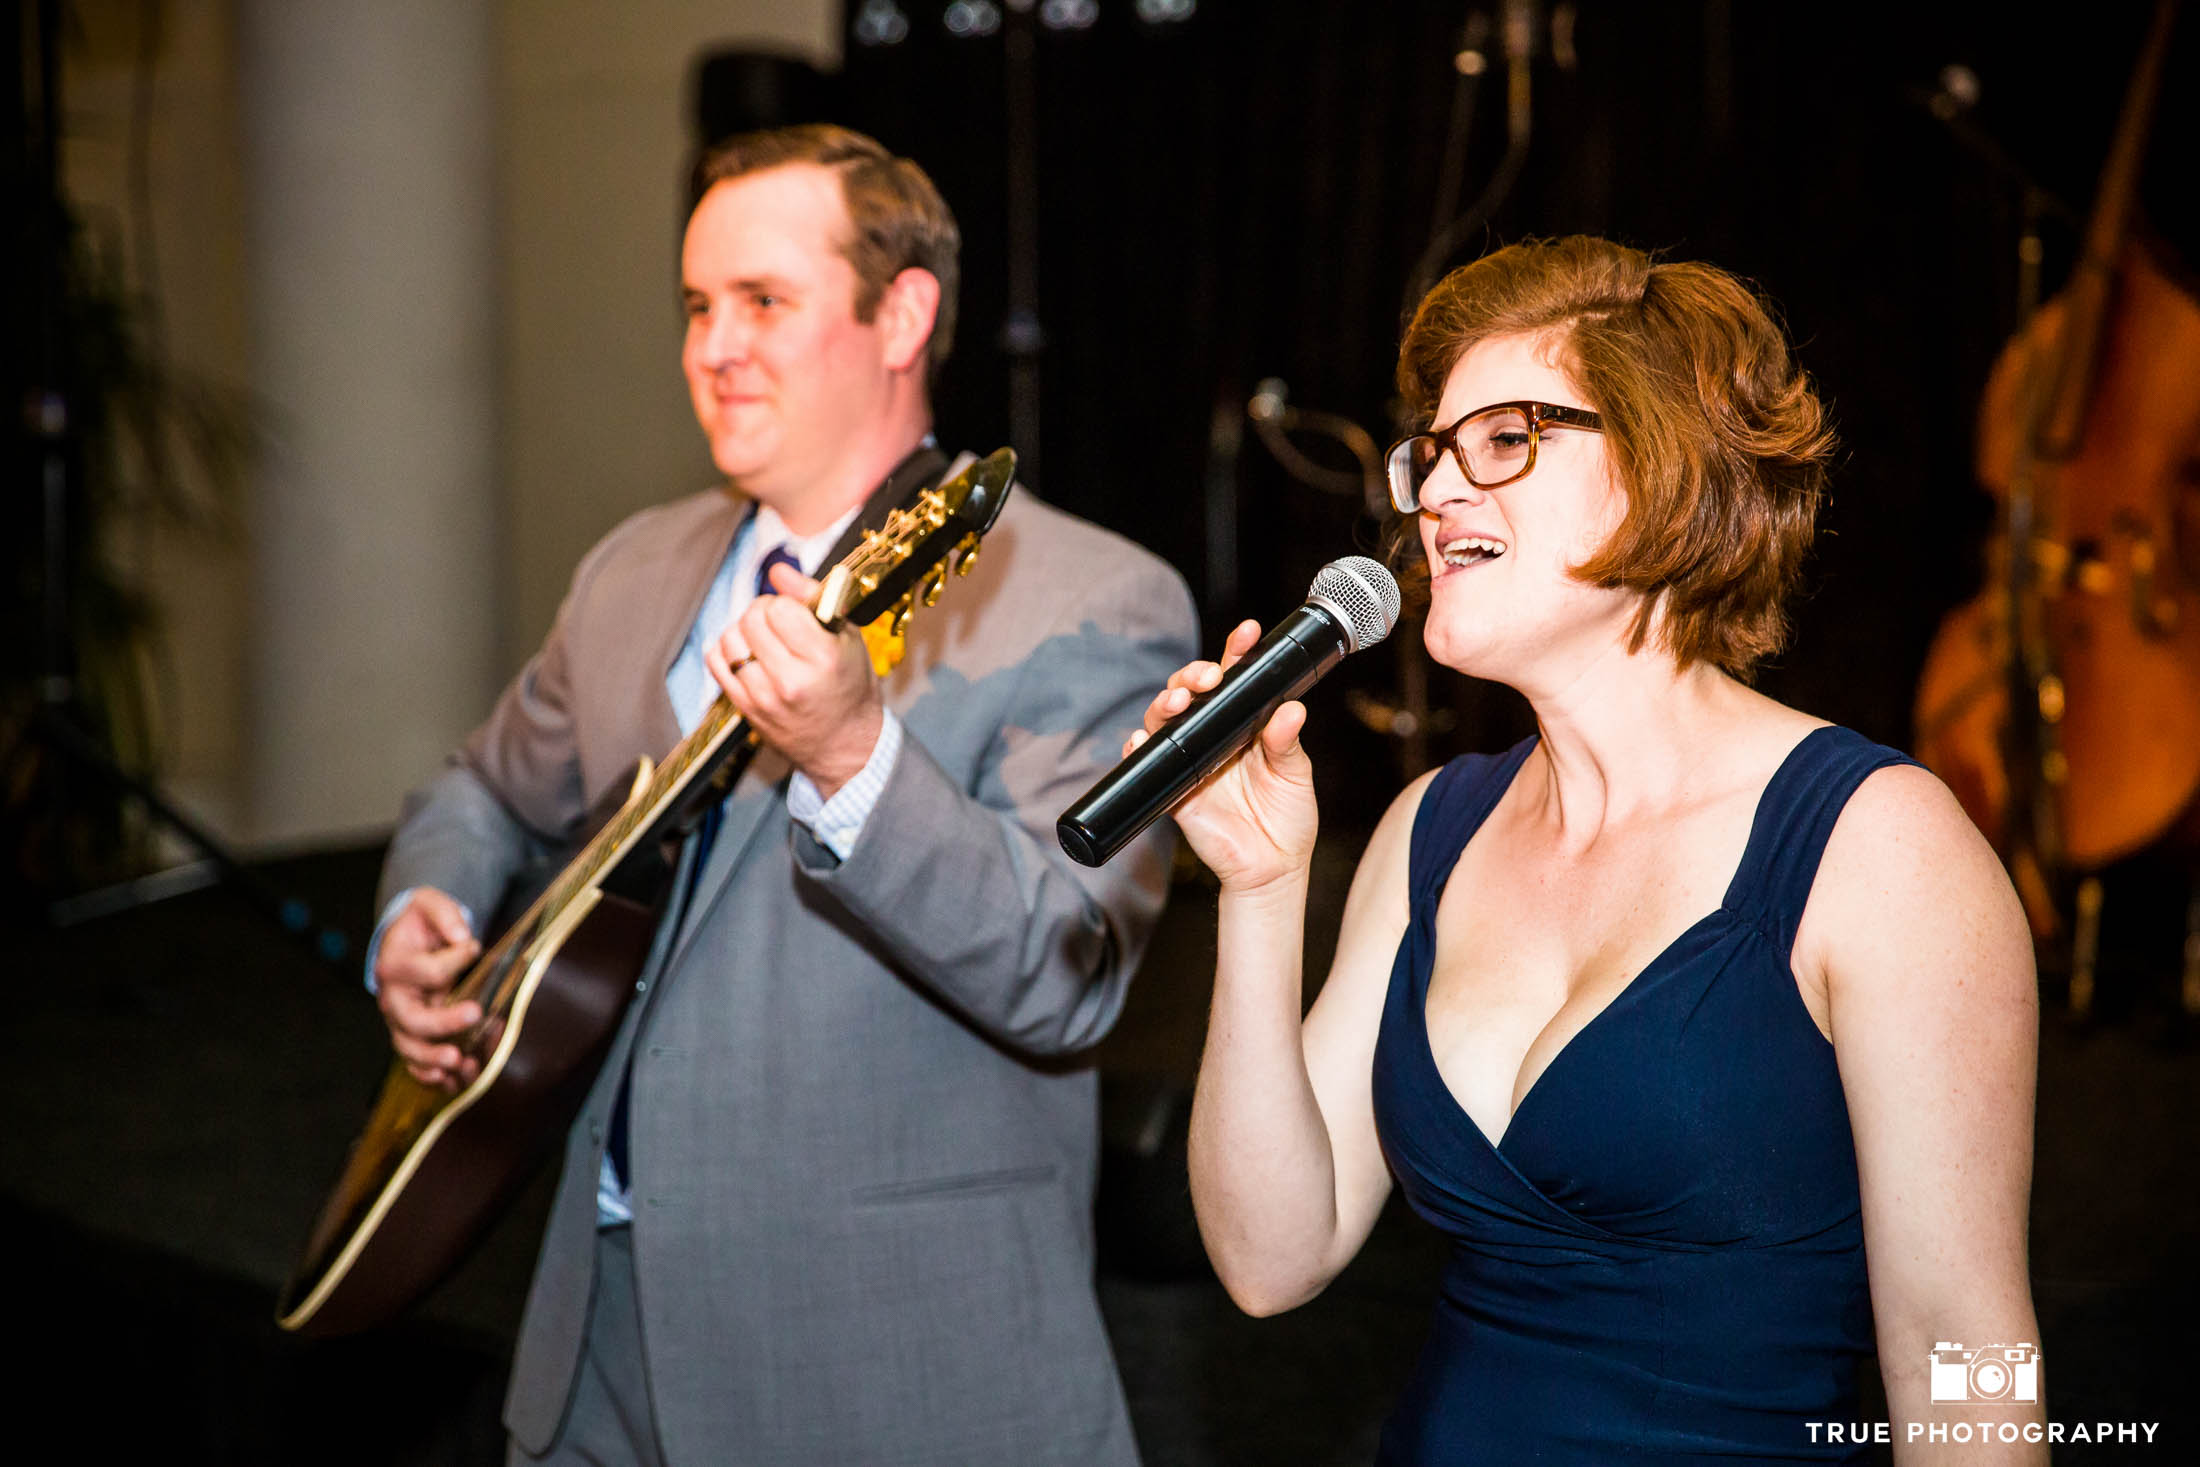 Groom plays guitar and performs with guest during Star Wars themed wedding reception